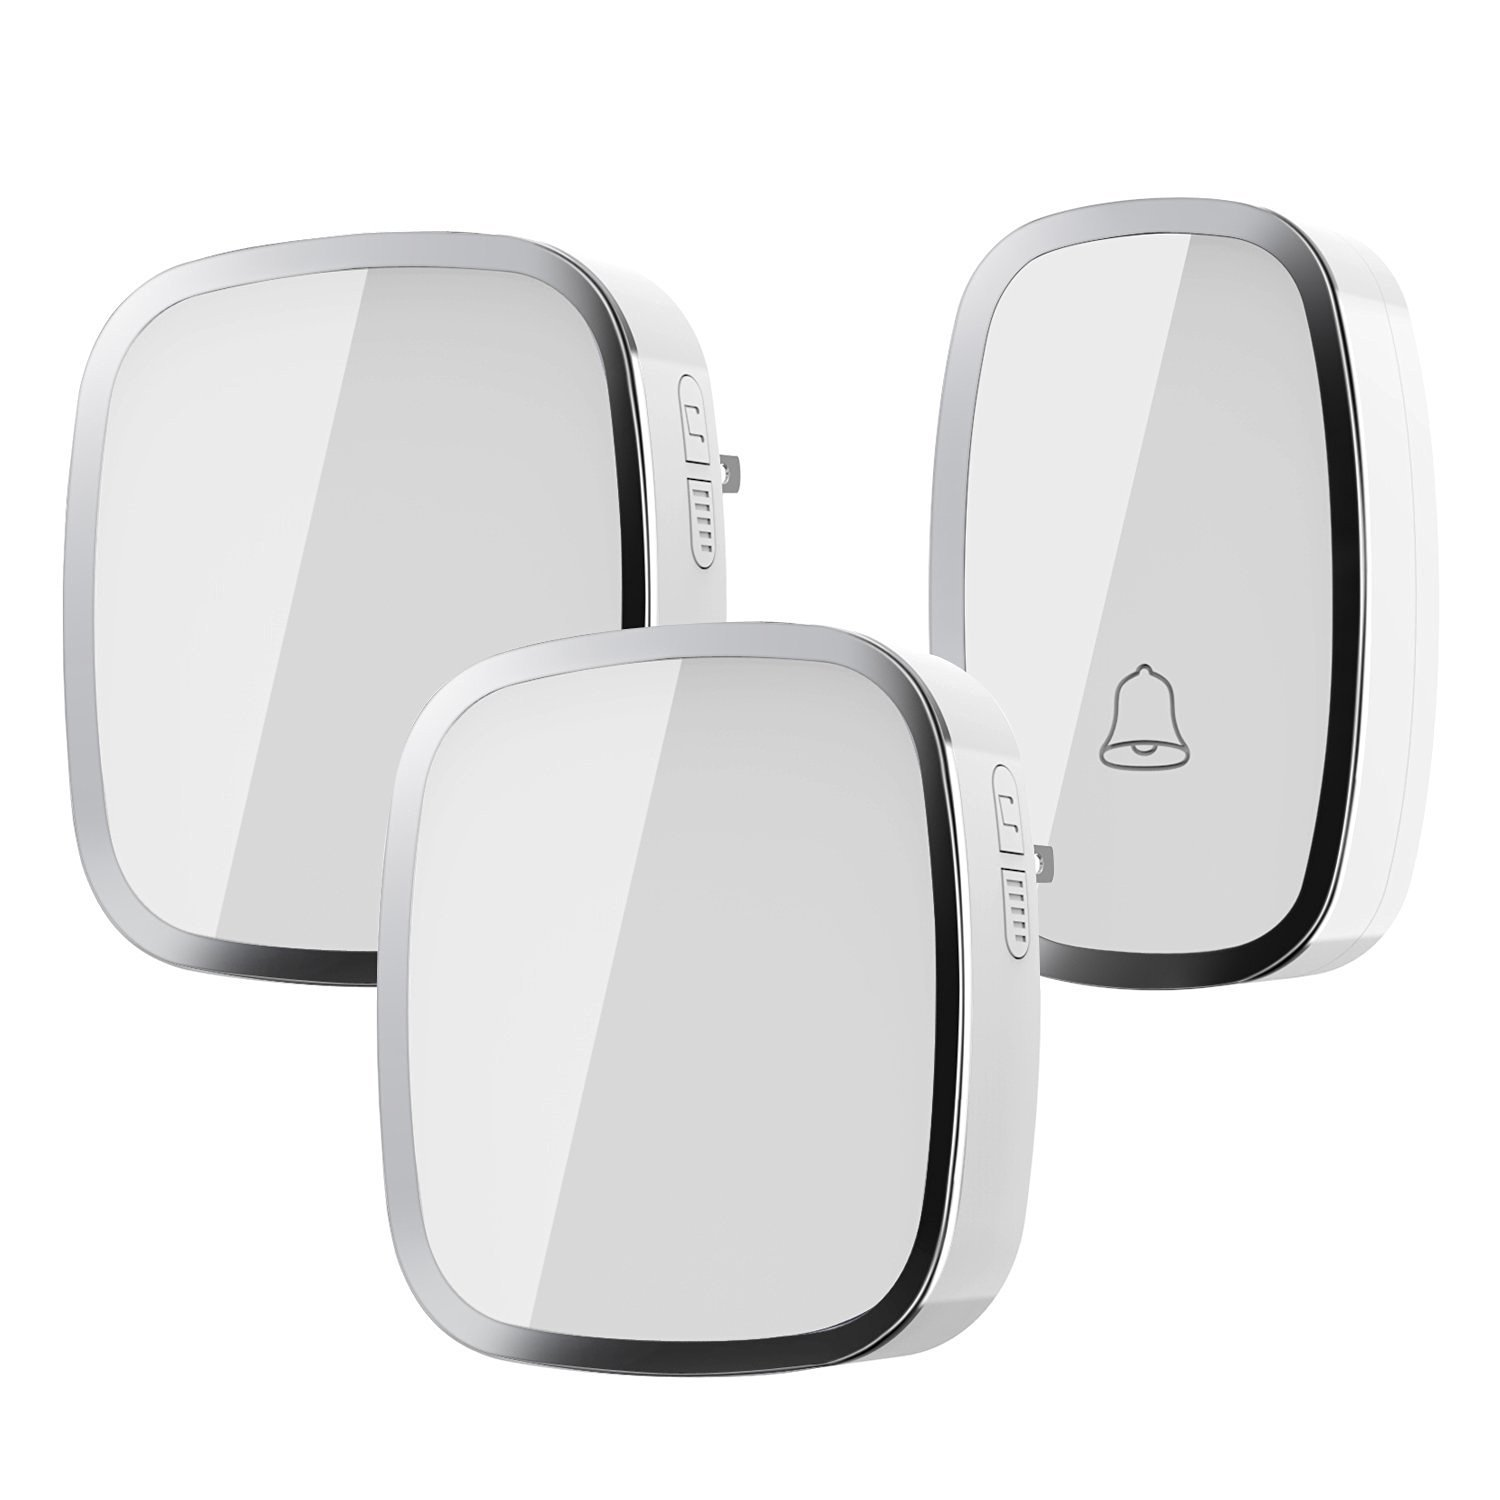 Wireless Doorbell, Wall Plug-in Cordless Door Chime at 1000-feet Range with 36 Tunes, Without Battery Required